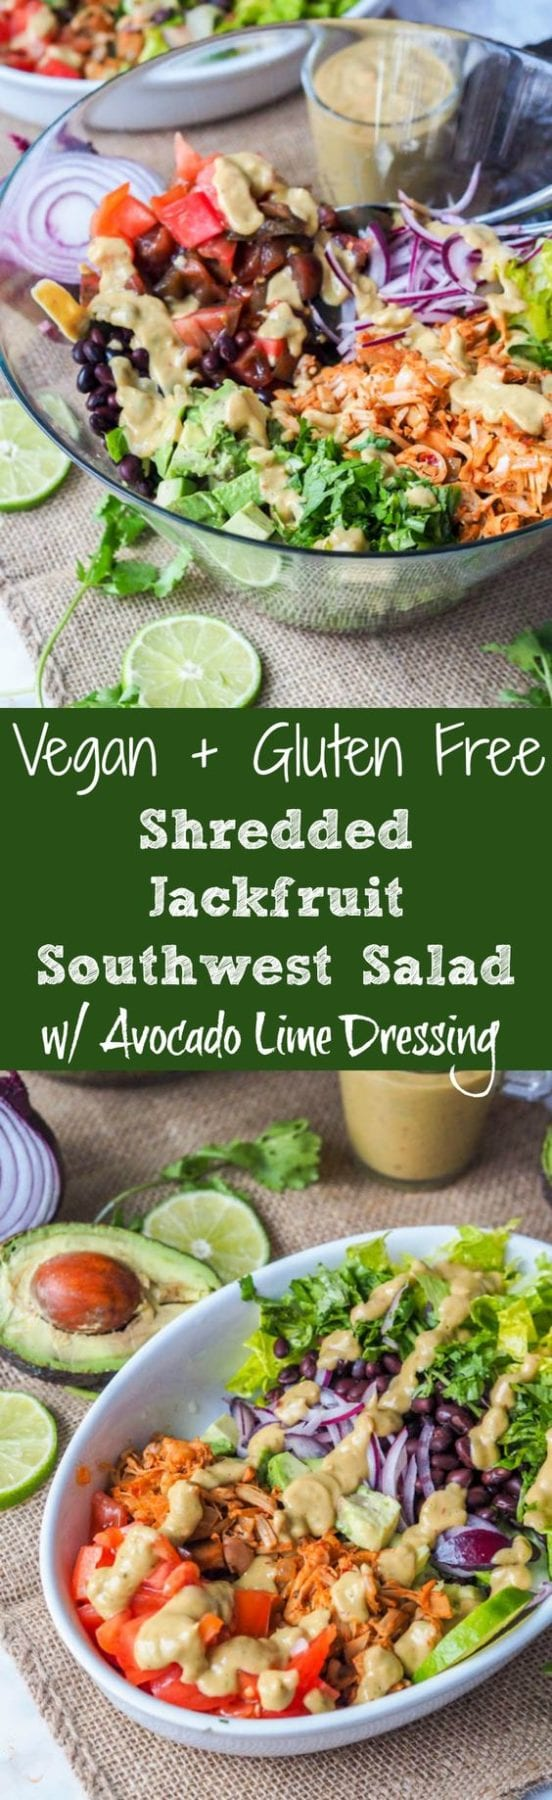 A super filling vegan and gluten free healthy and nutritious salad. Instead of traditional pulled pork, this recipe calls for shredded jackfruit which makes a perfect plant based substitute. This salad is packed full of vitamins and nutrients with romaine, tomatoes, red onions, avocado, black beans and a super-rich and creamy avocado lime based dressing.#salad #vegan #healthy #jackfruit #avocado #glutenfree